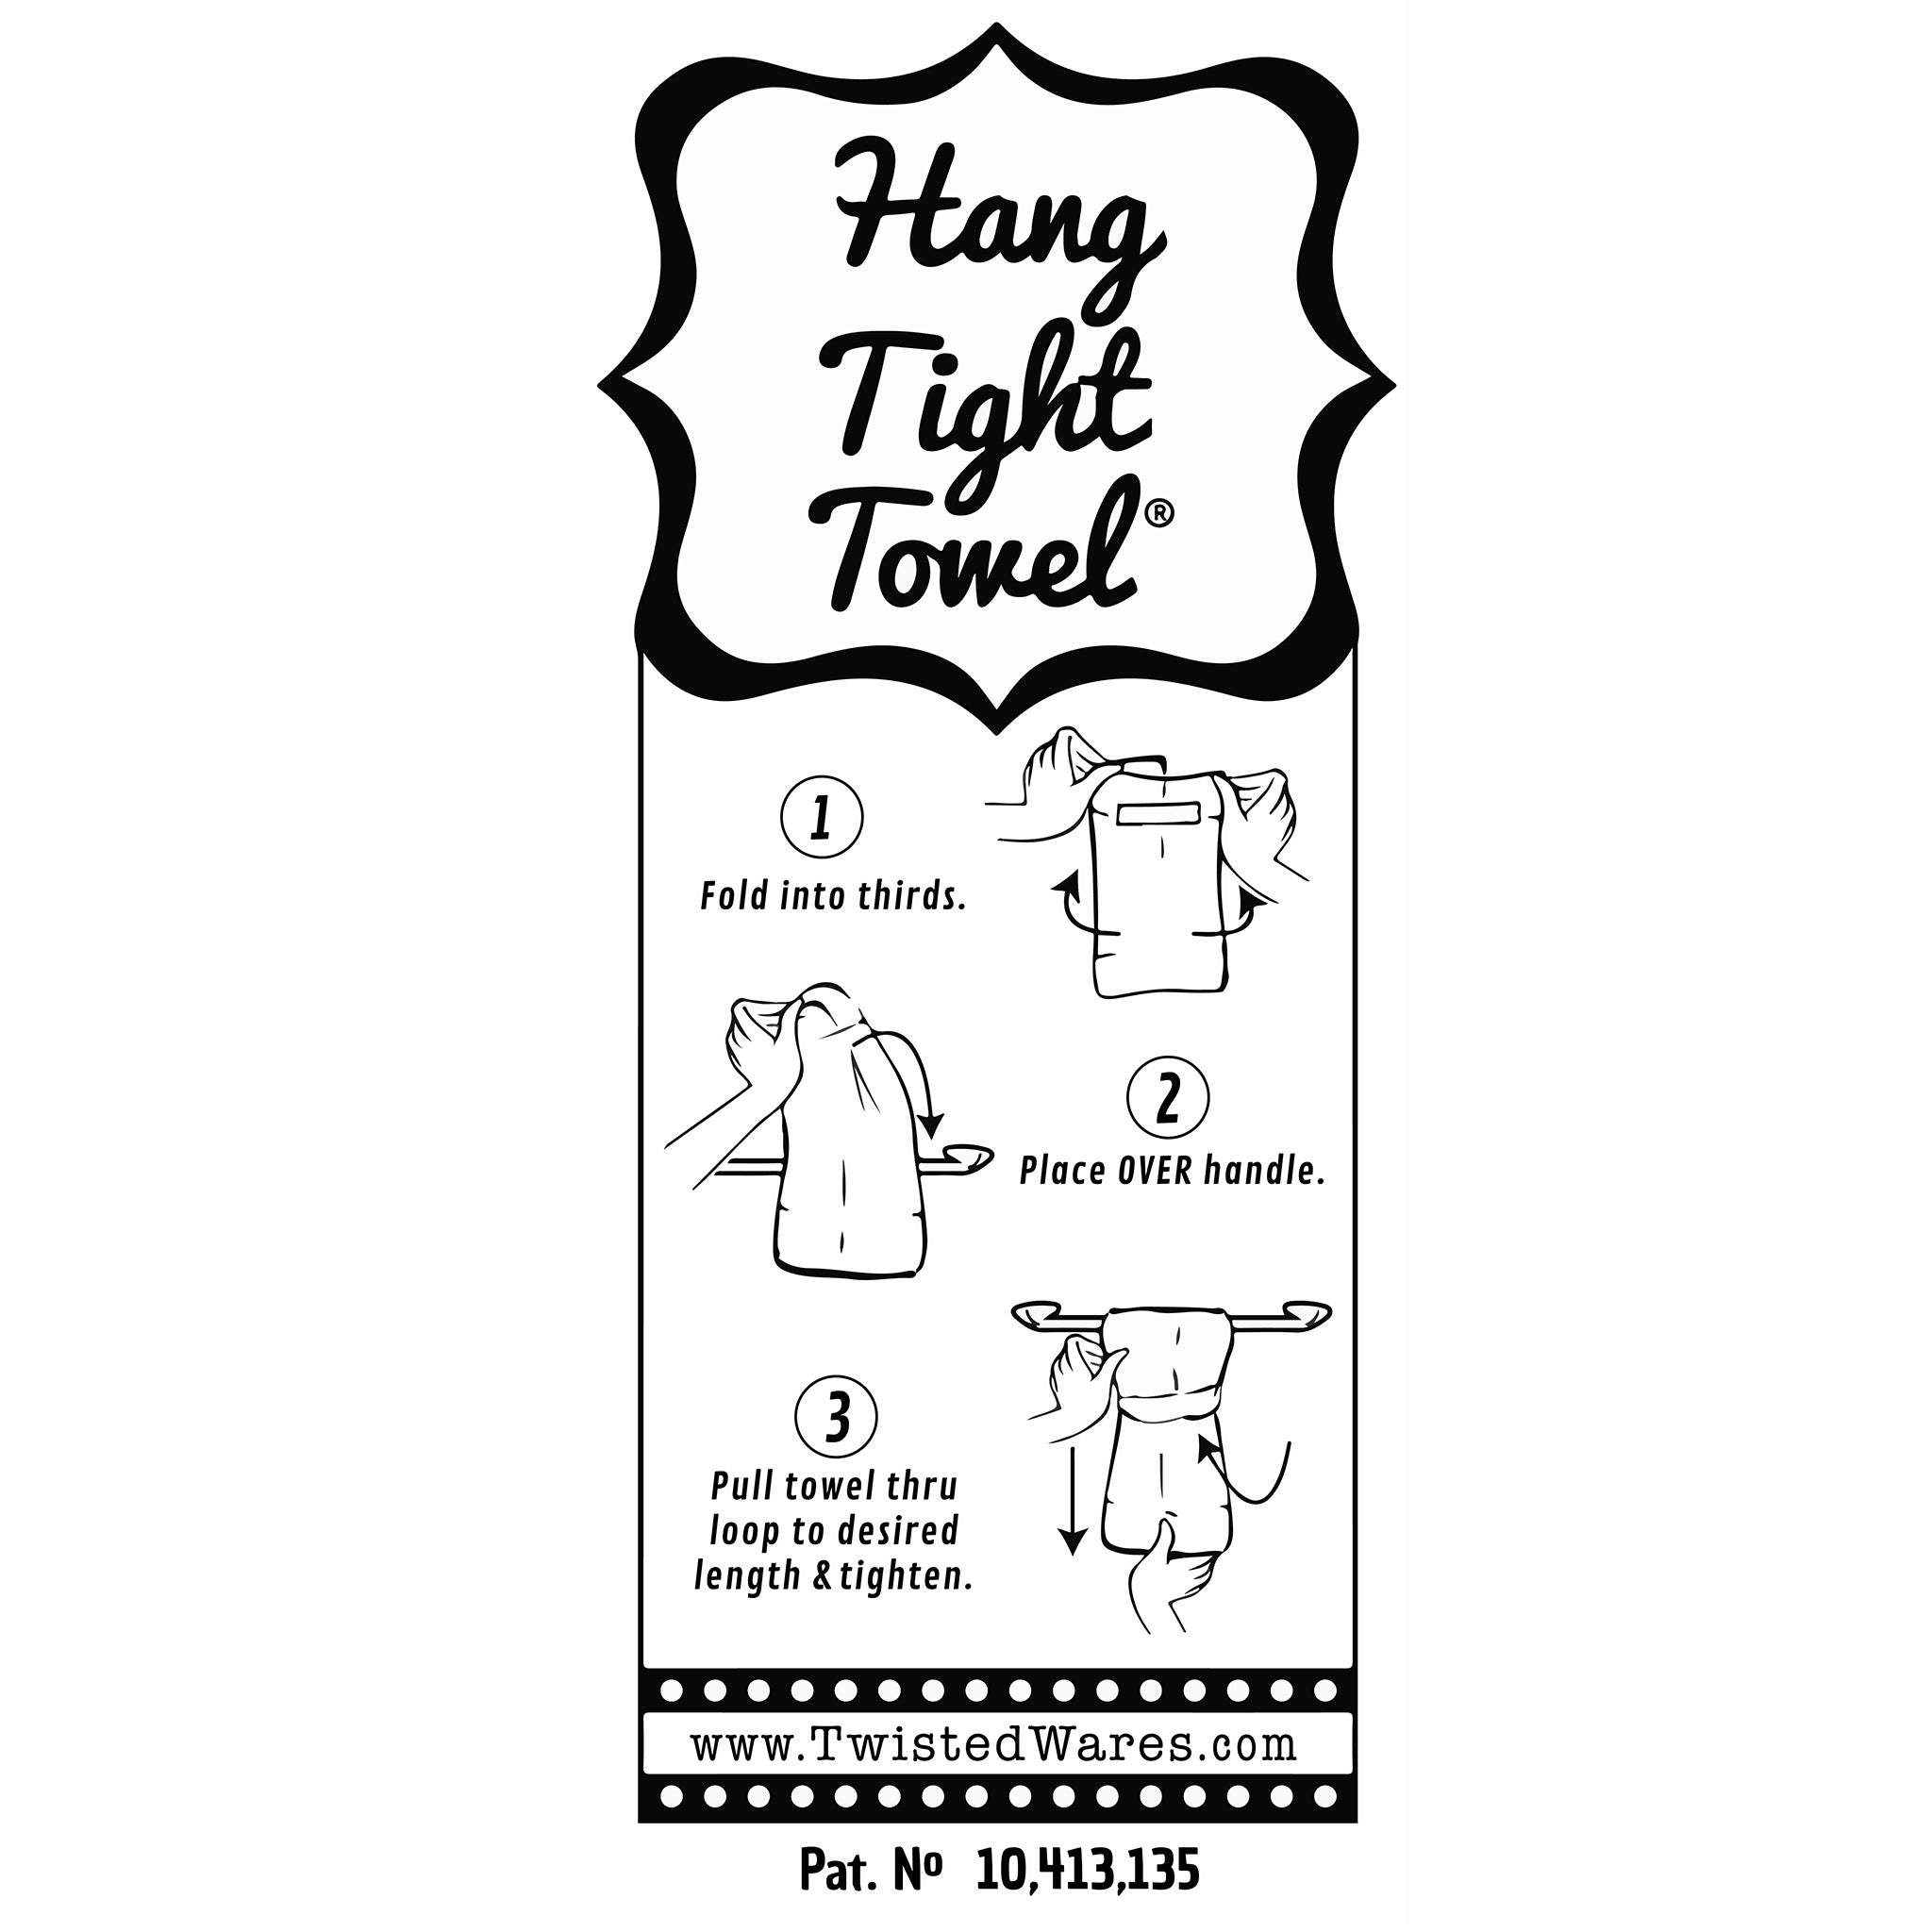 Wine Pain Scale Chart Flour Sack Hang Tight Towel®